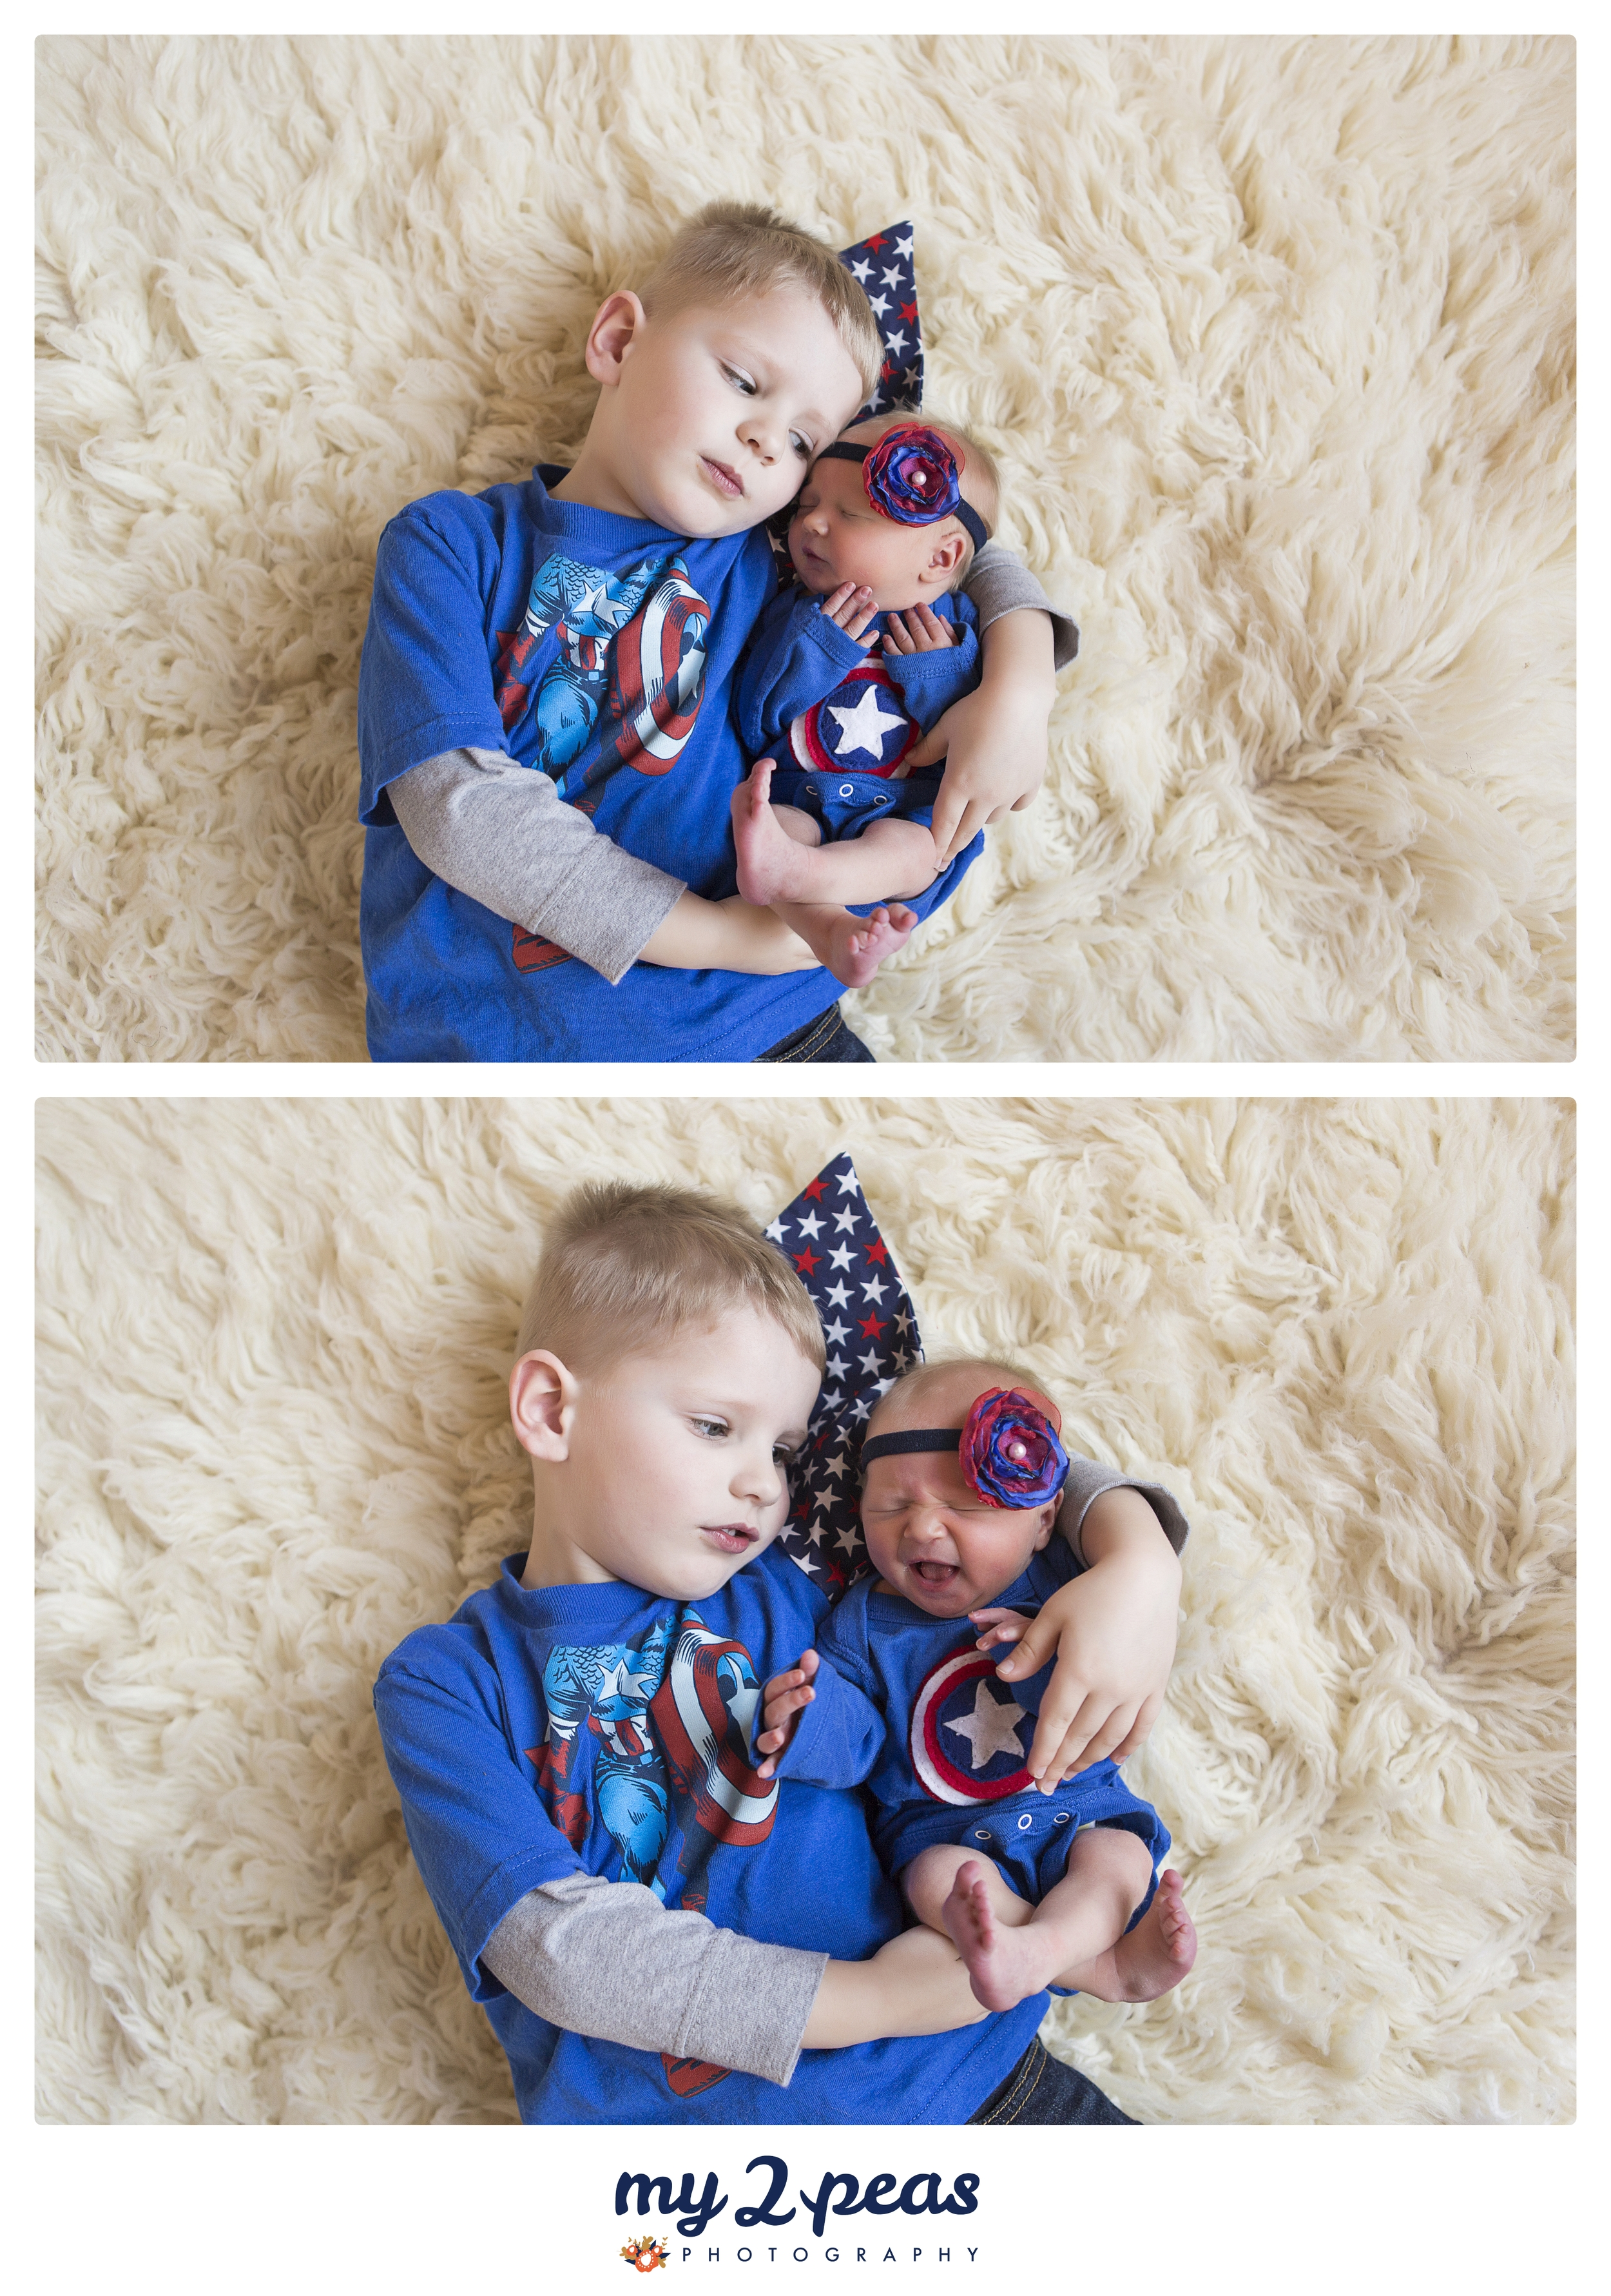 He also picked out these sweet little Captain America outfits... Mommy and Daddy's little super heros!!!